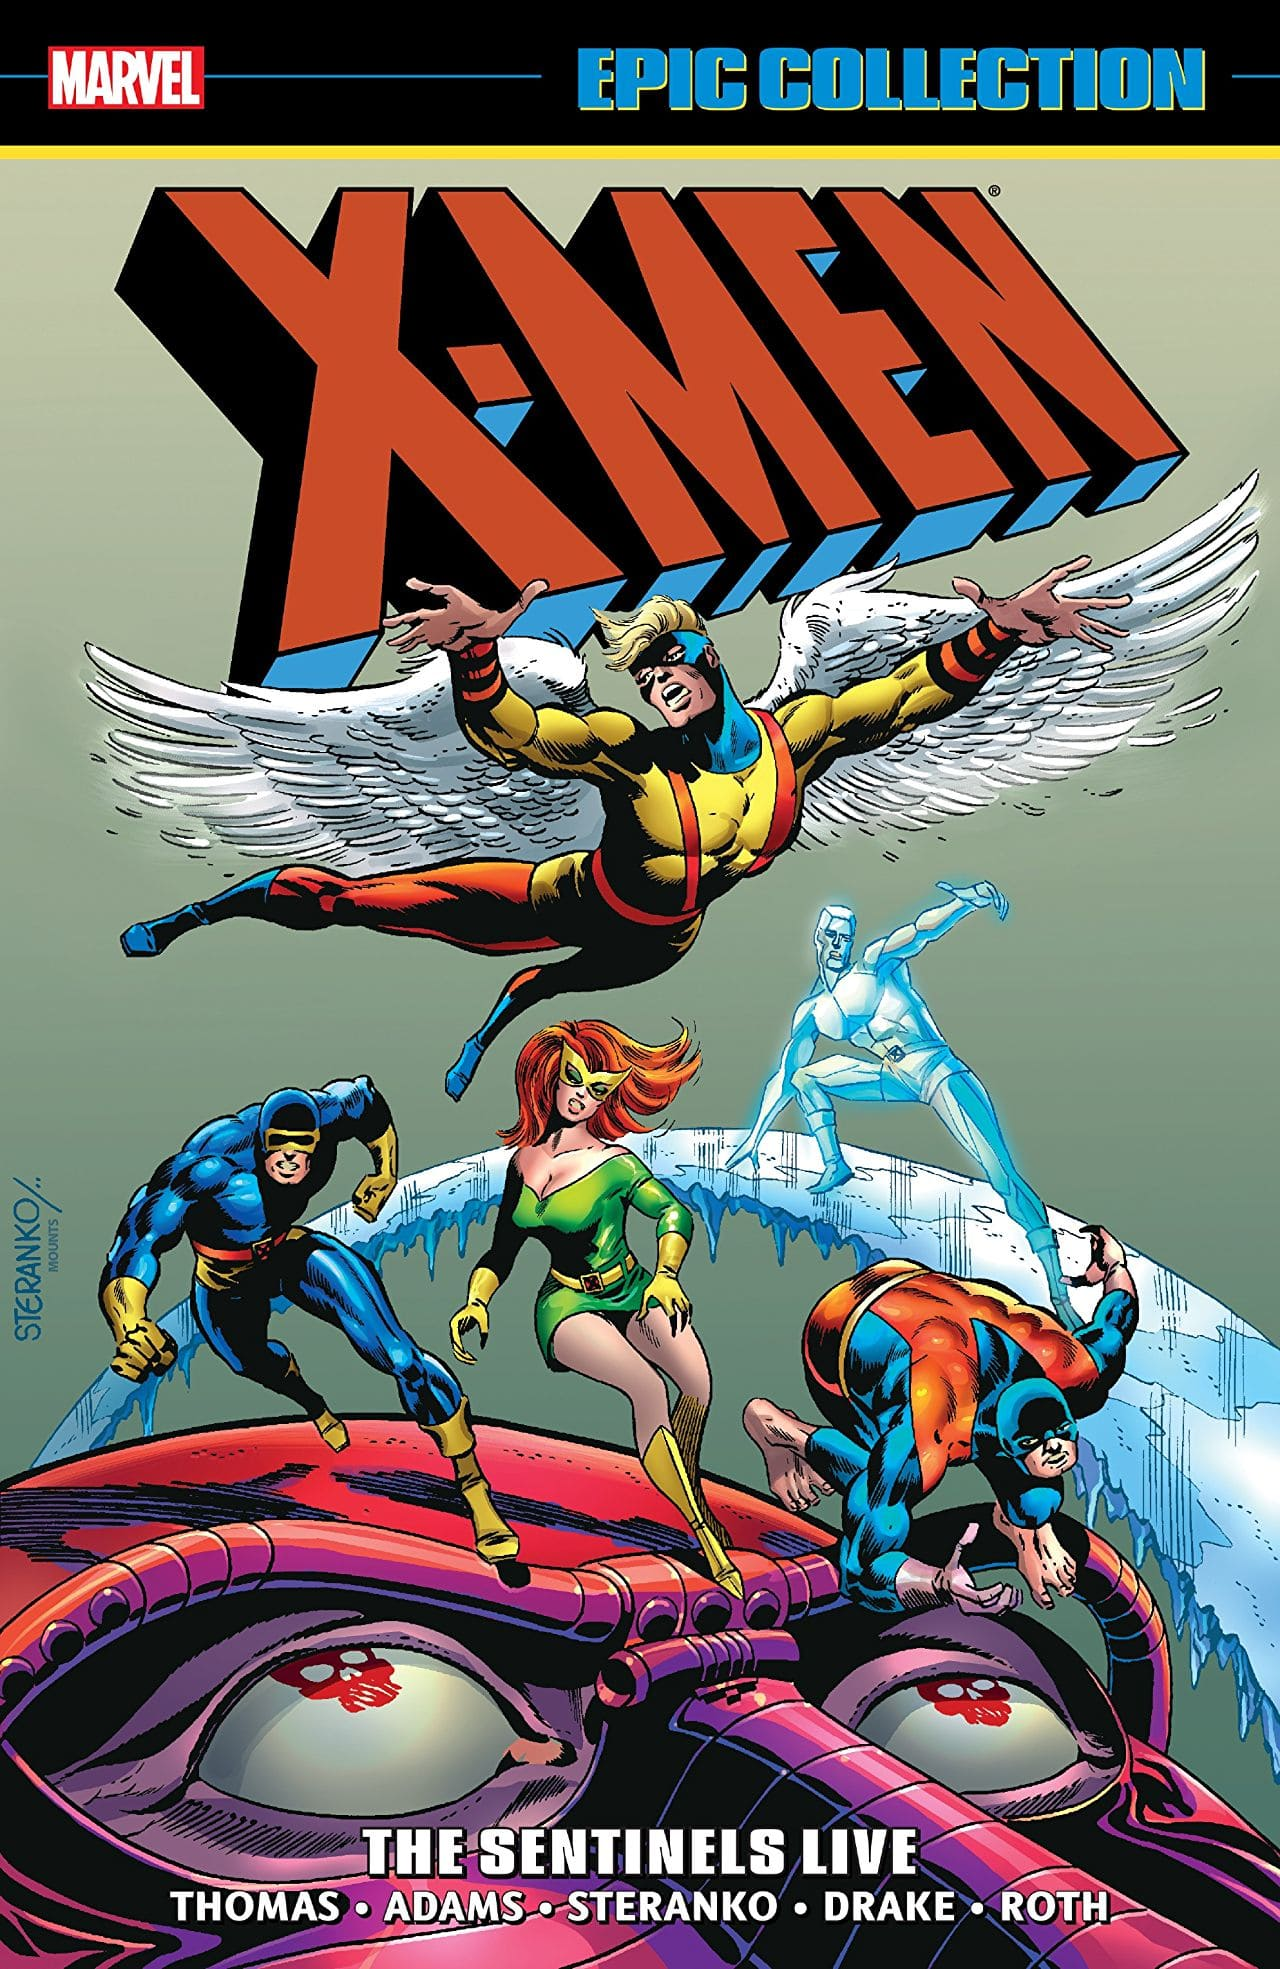 The final issues of the silver age X-Men get the Epic Collection treatment.